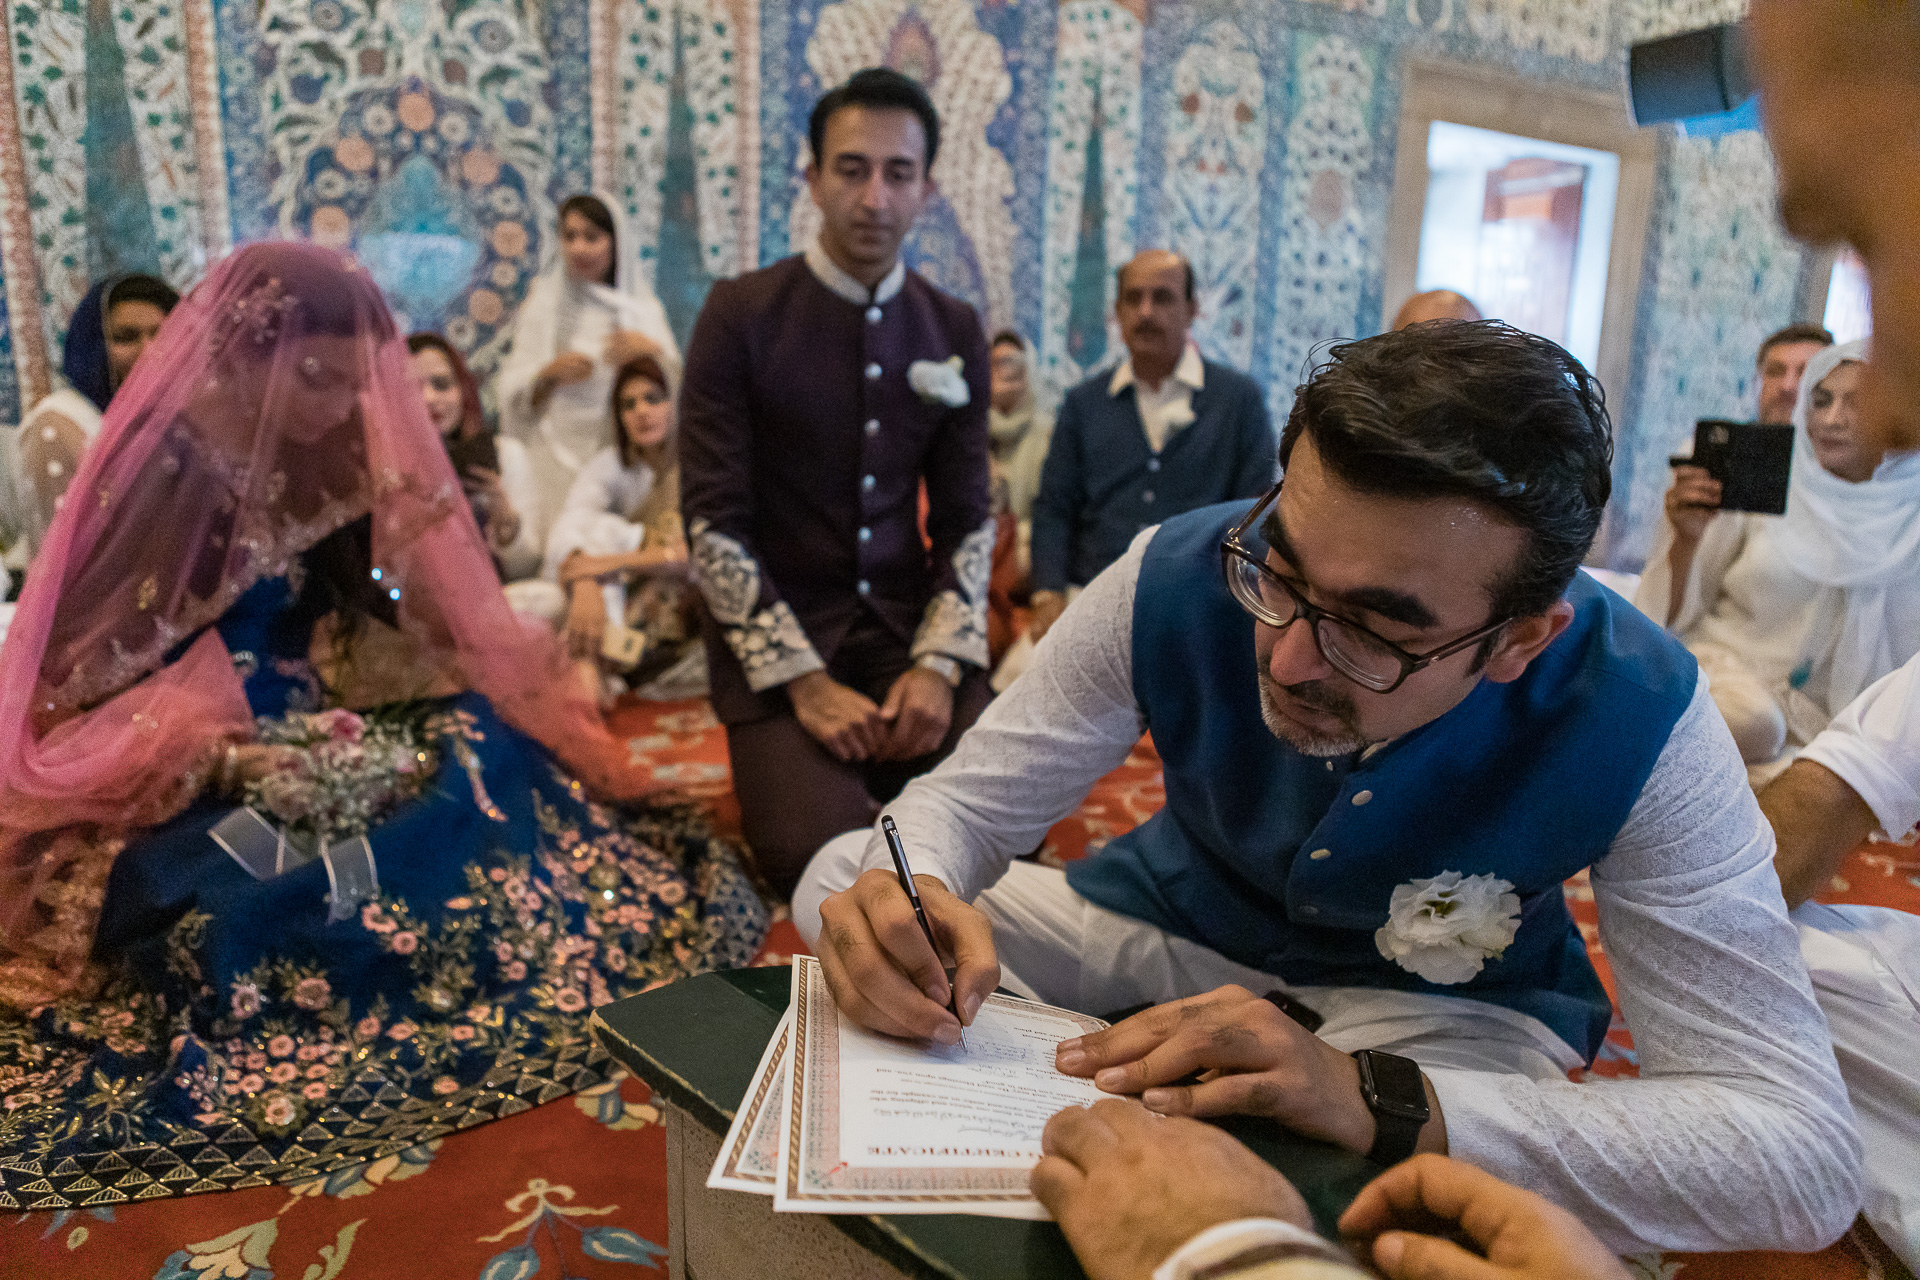 Istanbul Elopement Ceremony Image from Turkey | The brother of the bride signs the marriage documents